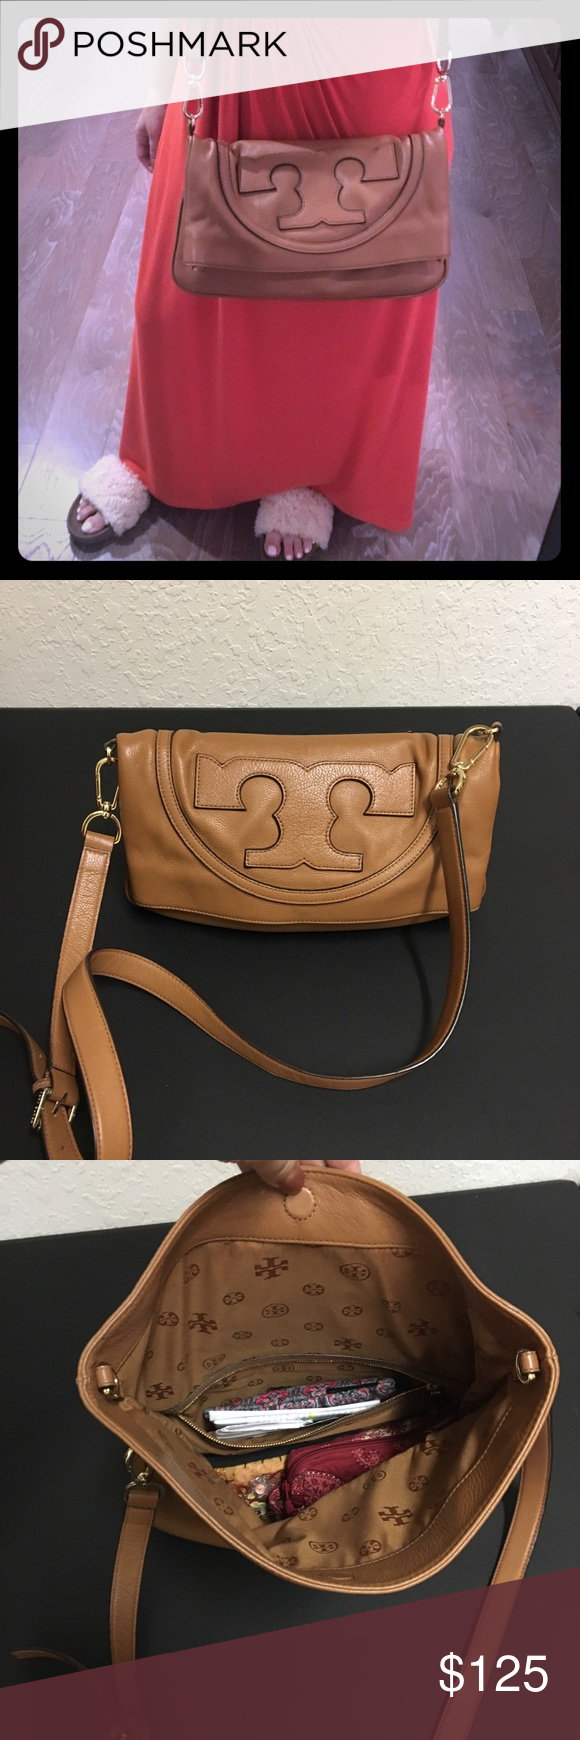 47629c30576e Authentic Tory Burch All T Suki Crossbody Bag Nice size and nice look! Fits  a